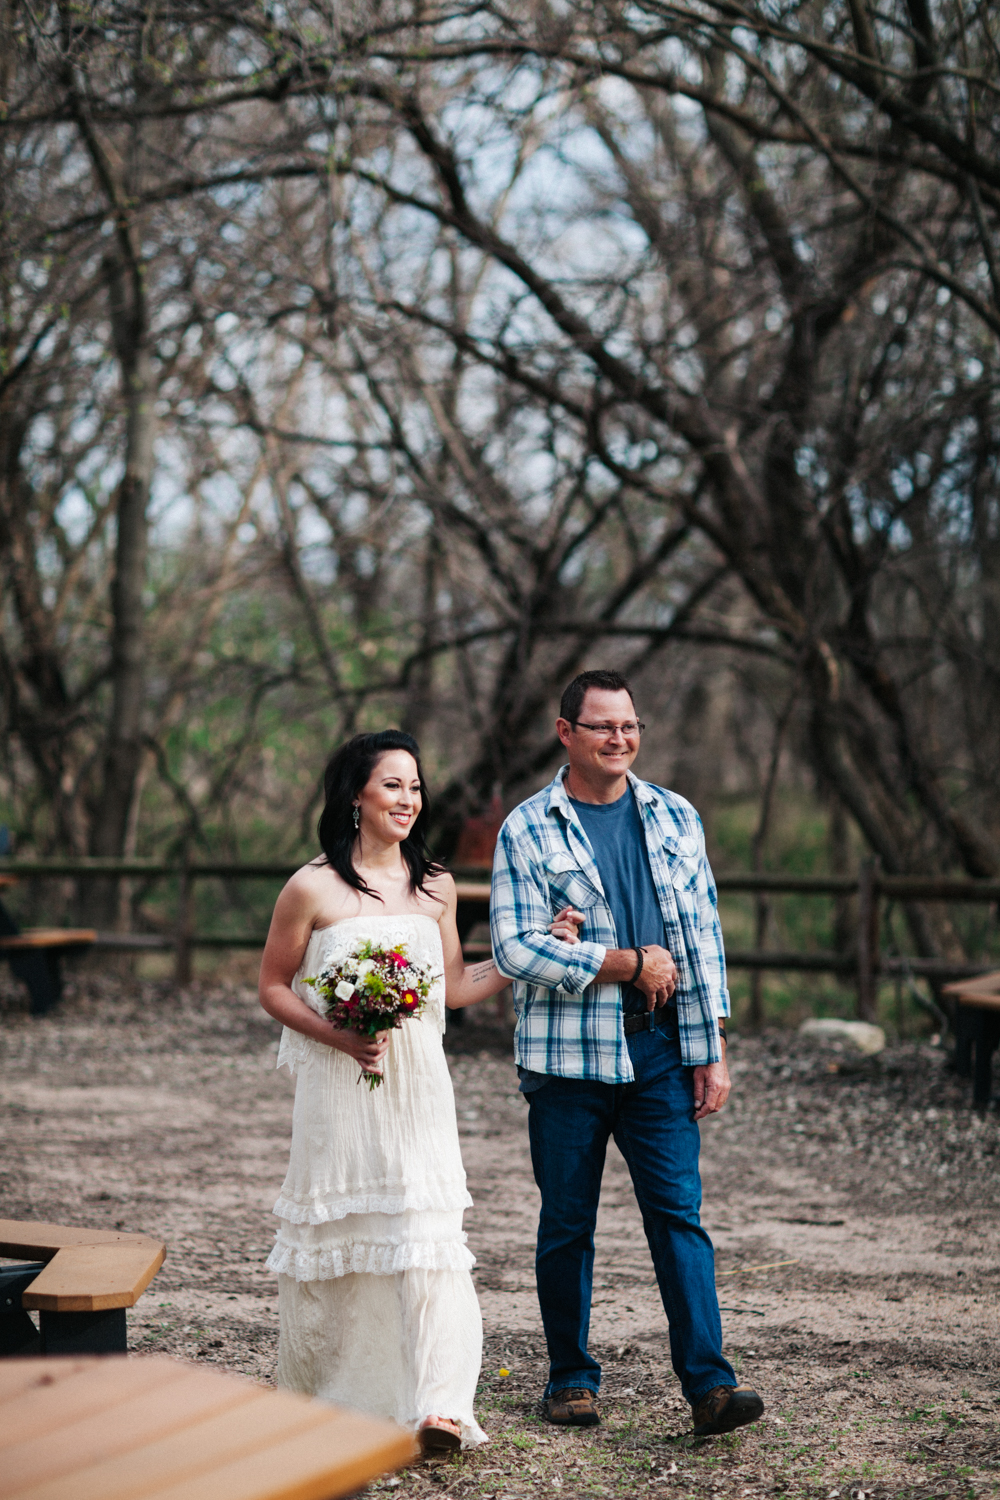 Wichita, KS Elopement-Wedding - Neal Dieker-103.jpg